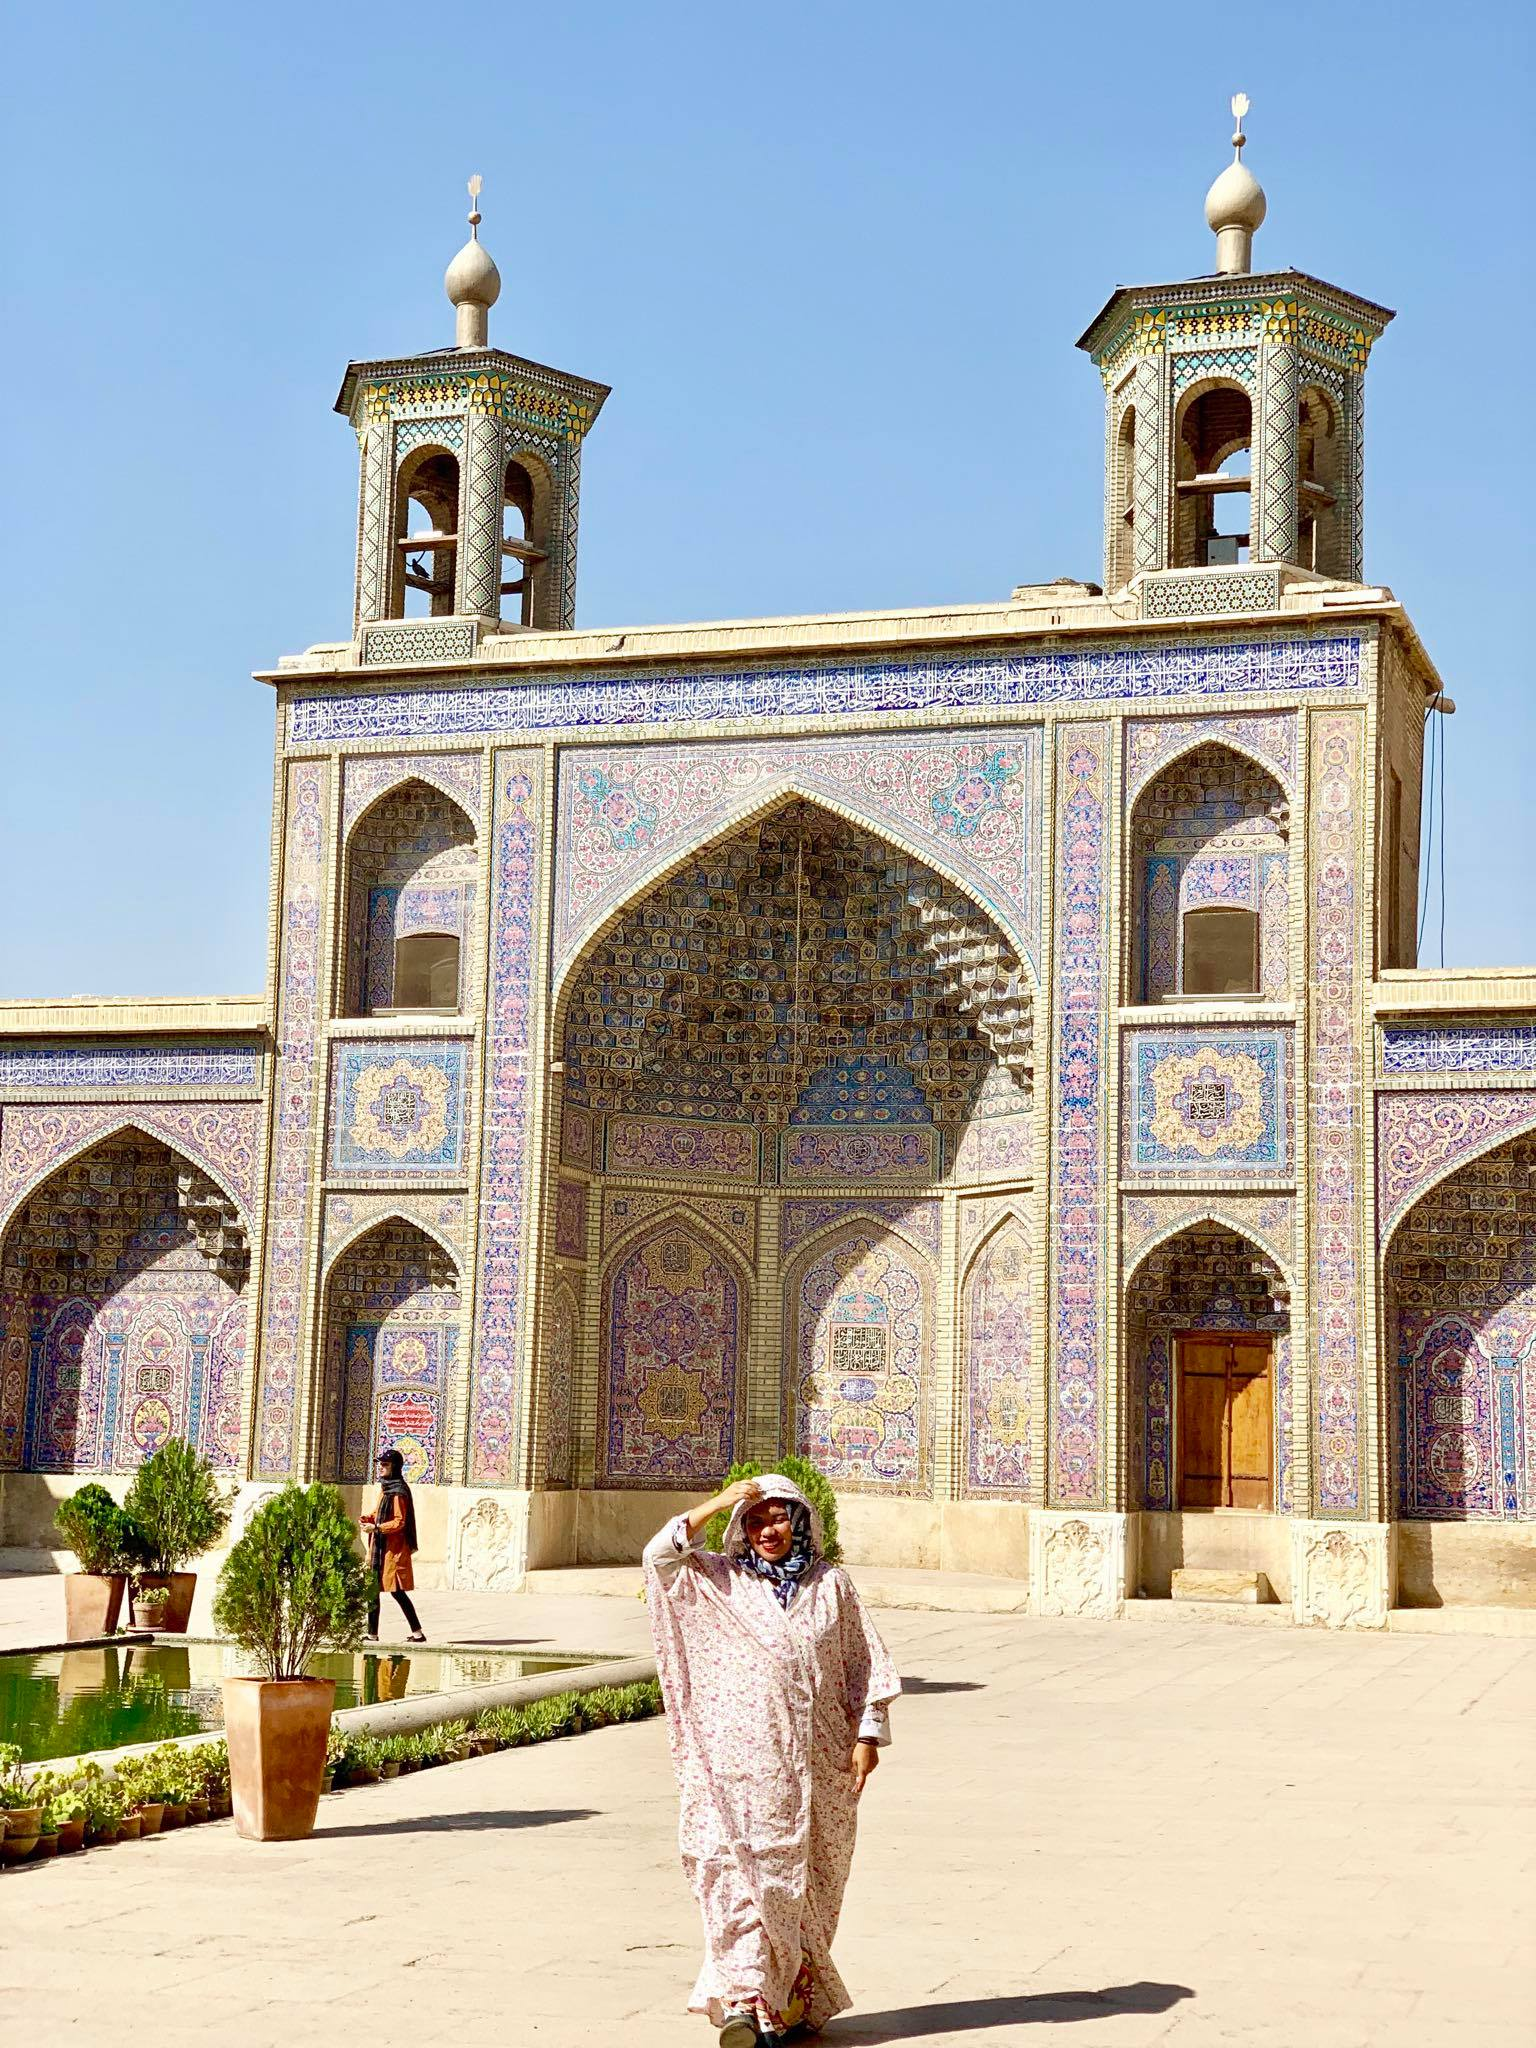 Kach Solo Travels in 2019 Full day tour of Shiraz32.jpg